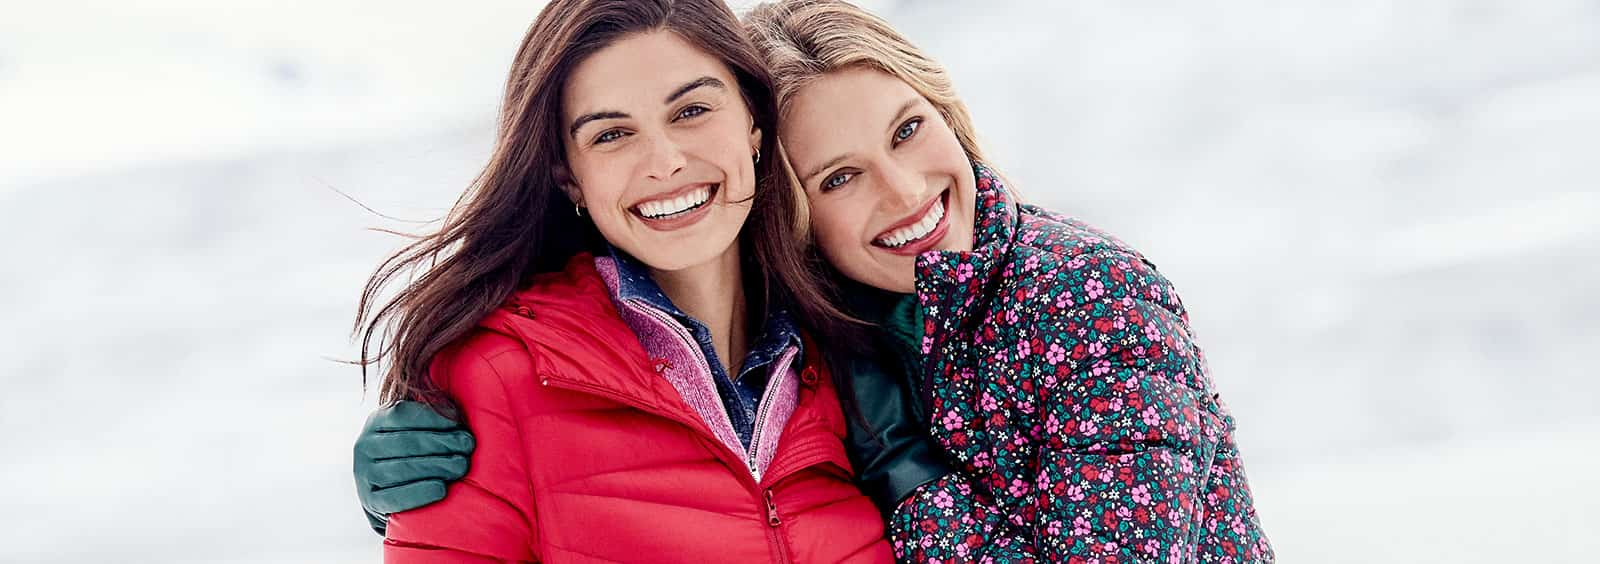 Women's Winter Coats You Can Wear to a Formal Event